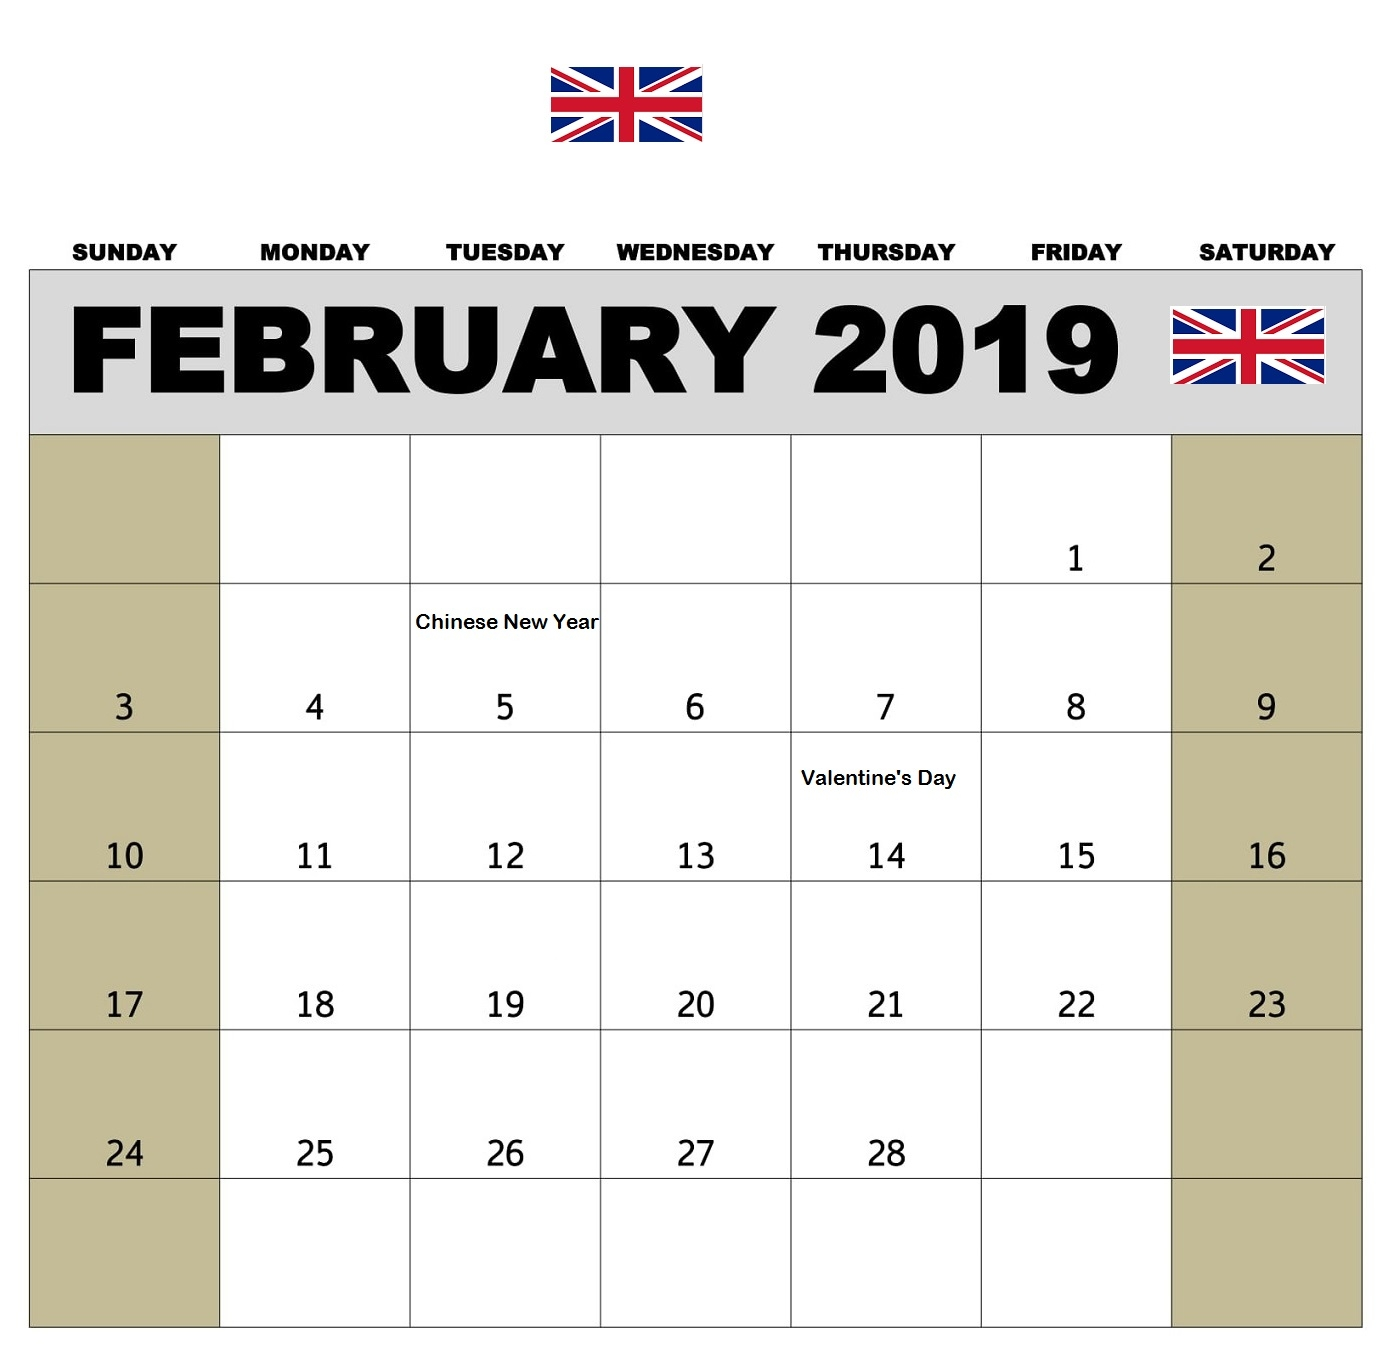 february 2019 calendar with holidays calendar 2019 February 2019 Calendar erdferdf